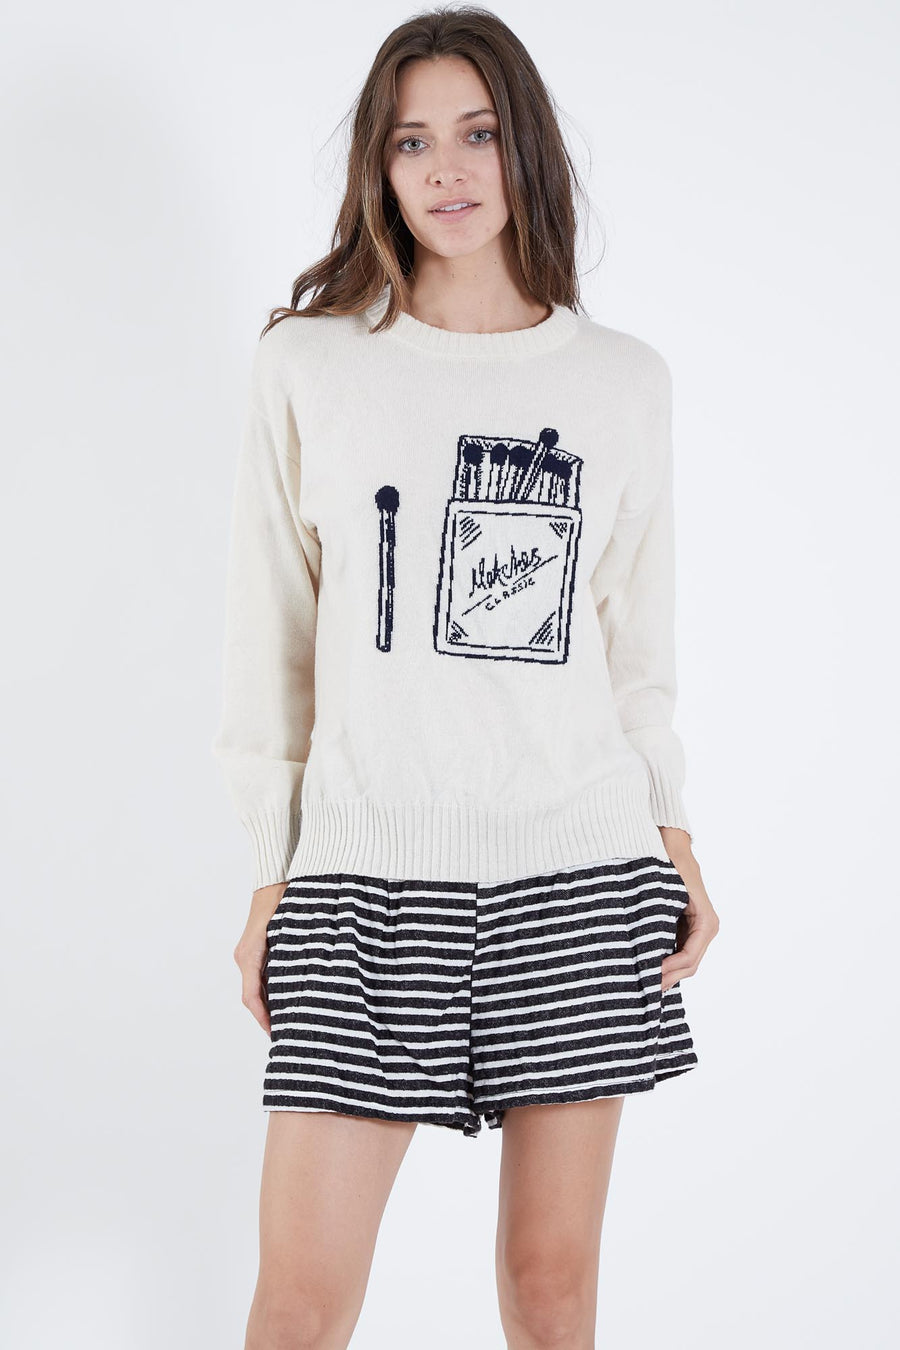 TREVI SWEATER IVORY W/ NAVY MATCHES